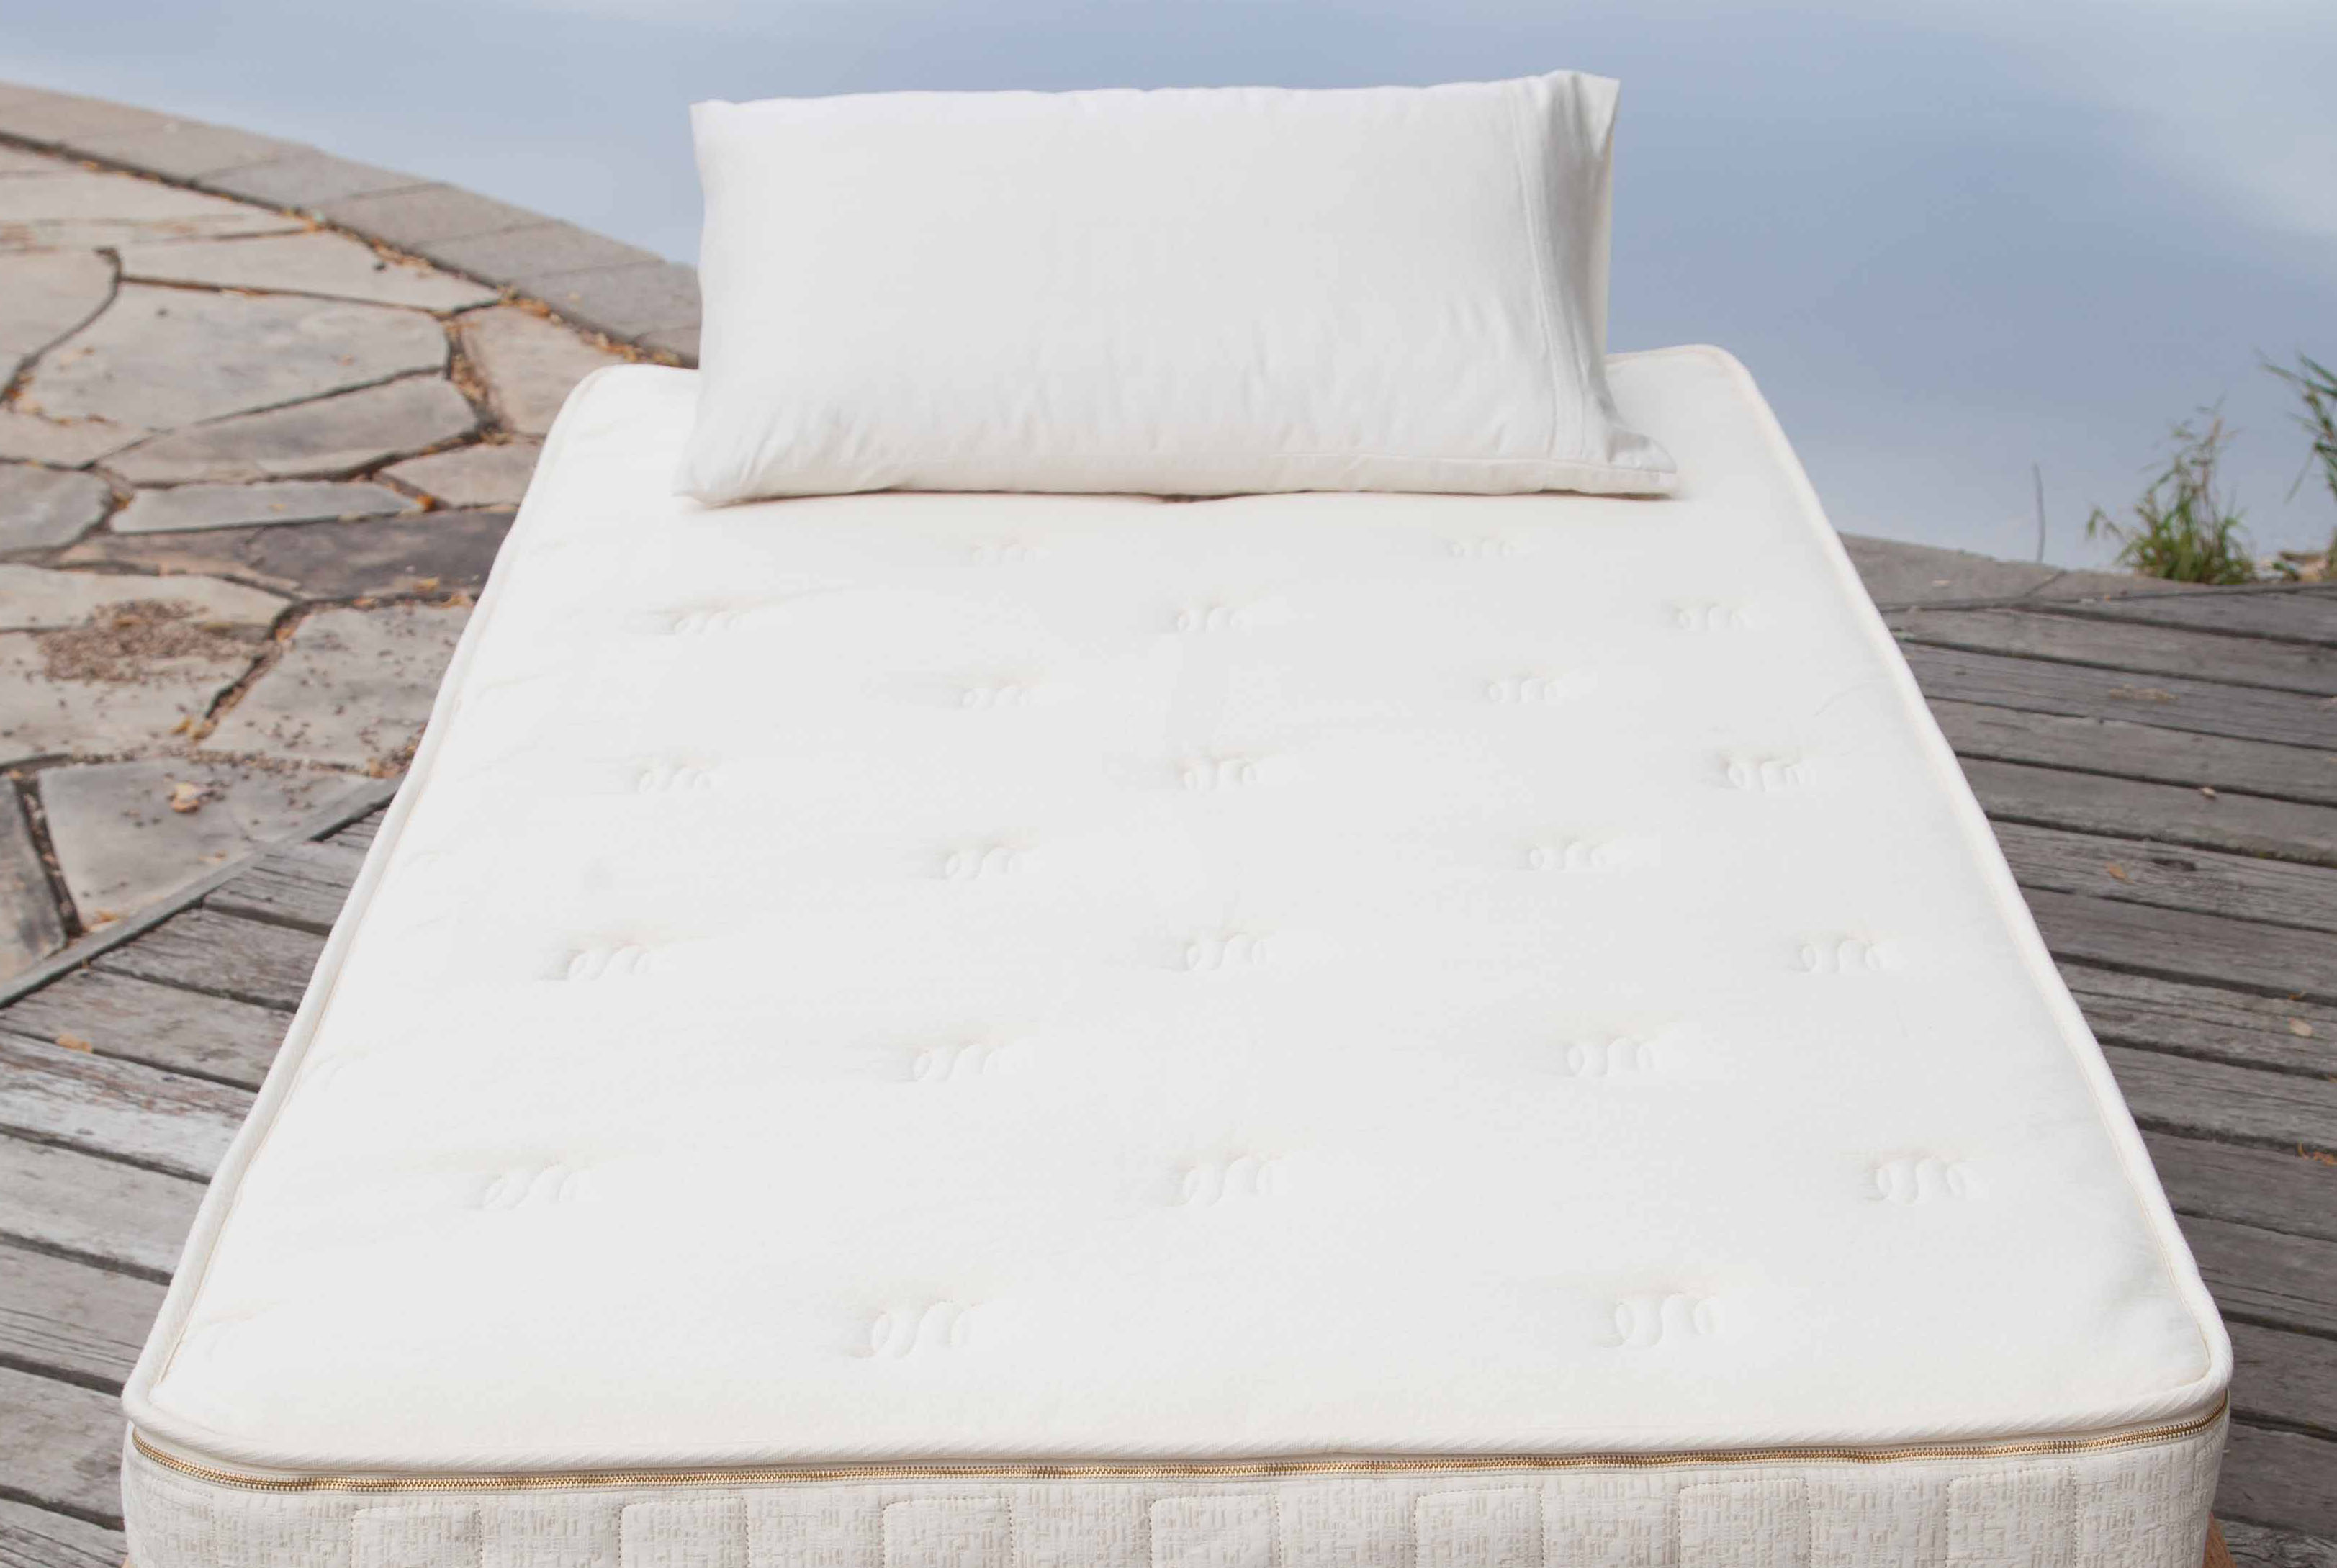 Freefrom Simple Natural Latex Mattress